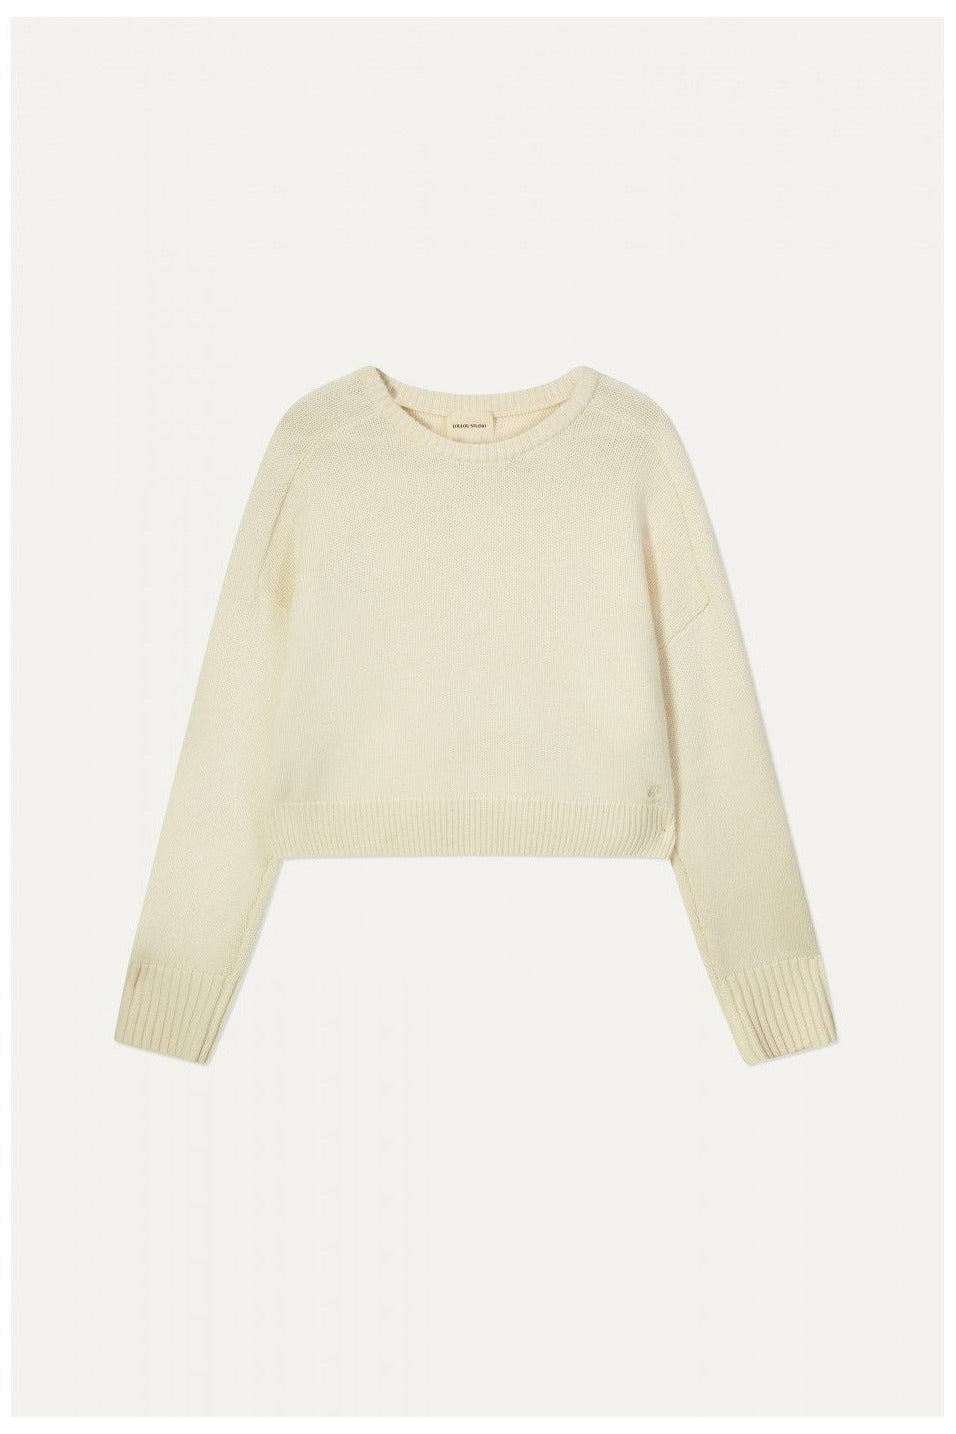 CASHMERE WOOL OVERSIZED CROPPED SWEATER IVORY BY LOULOU STUDIO - BEYOND STUDIOS